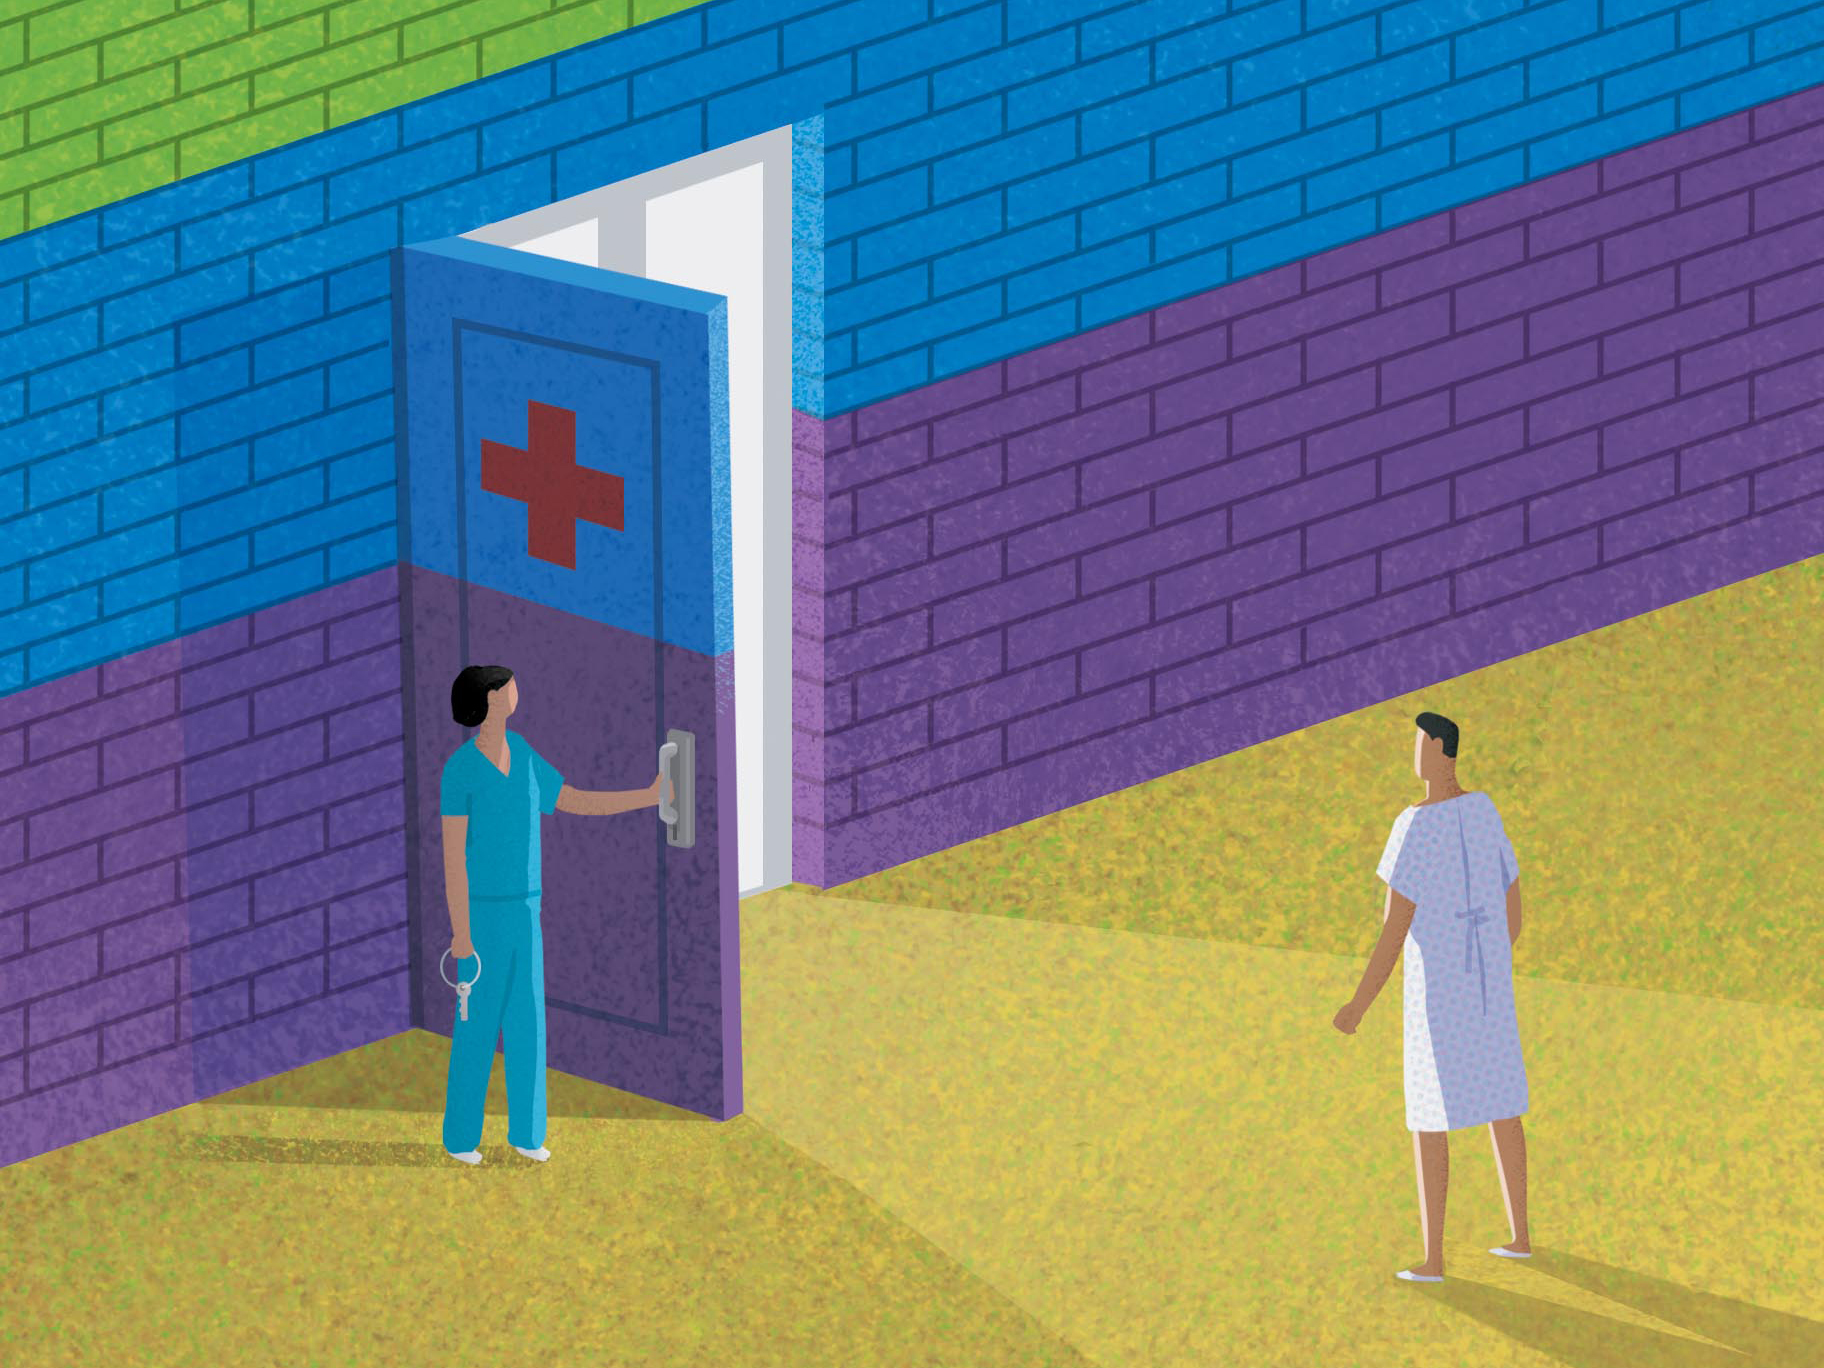 Nursing Considerations to Reduce Barriers to Care